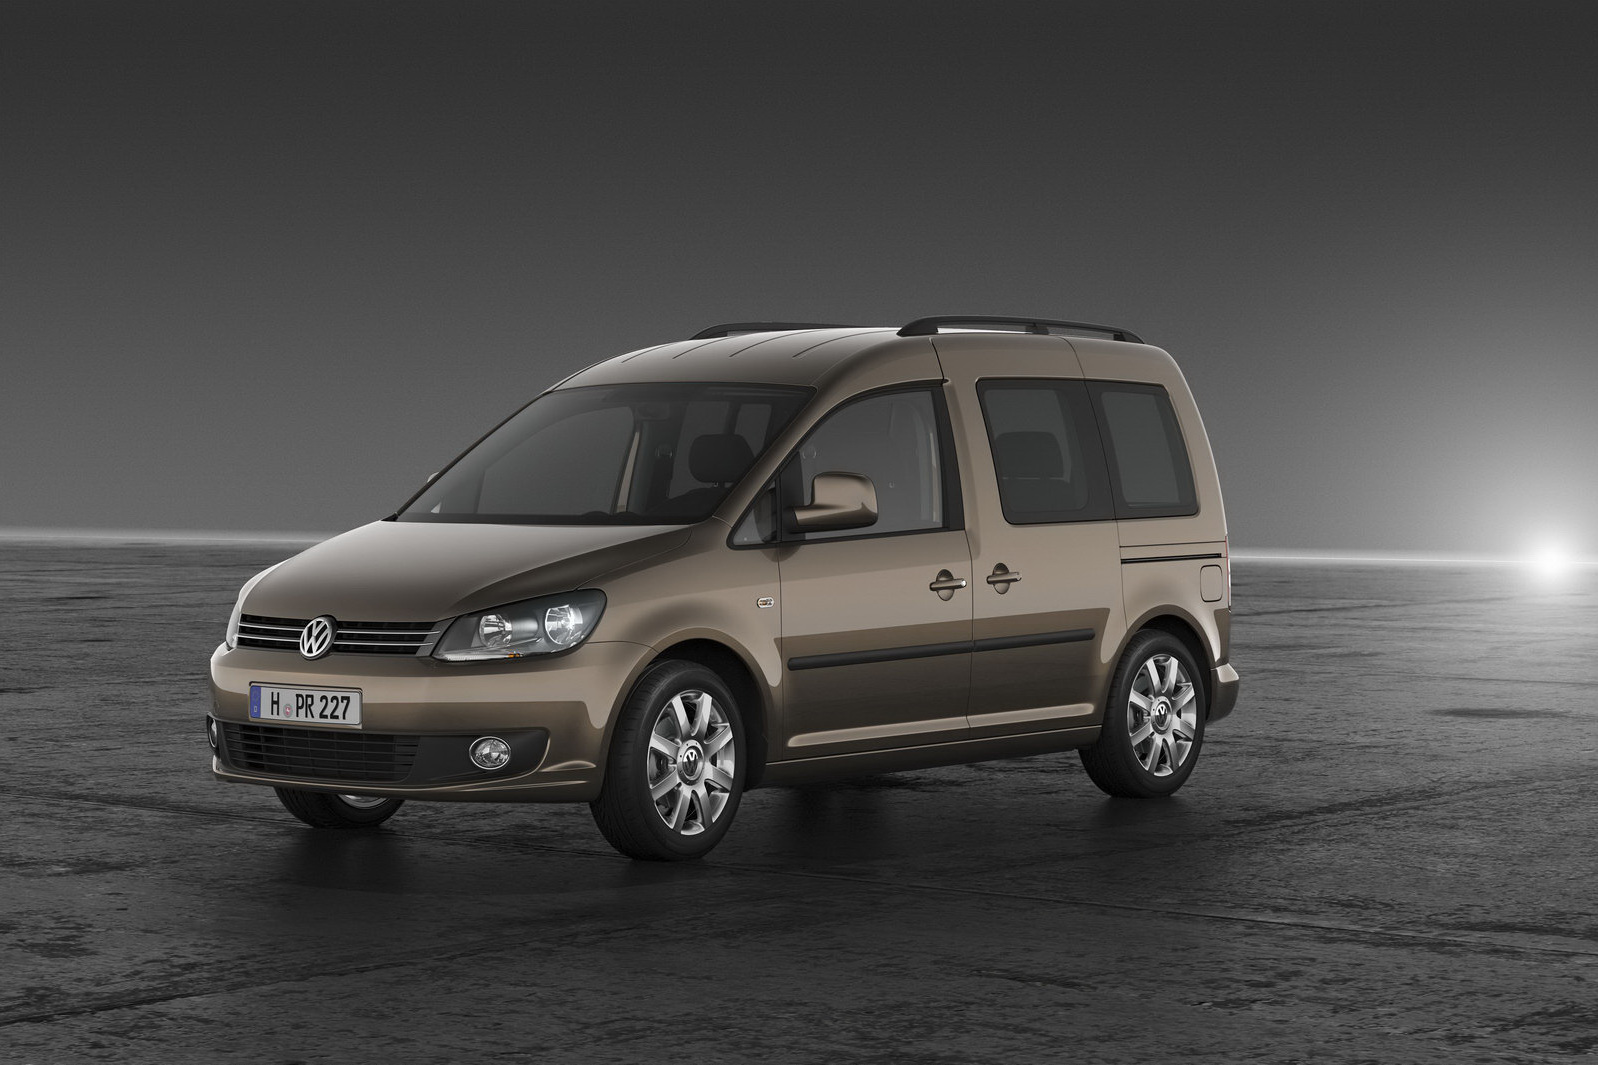 volkswagen unveils redesigned 2011 caddy minivan carscoops. Black Bedroom Furniture Sets. Home Design Ideas